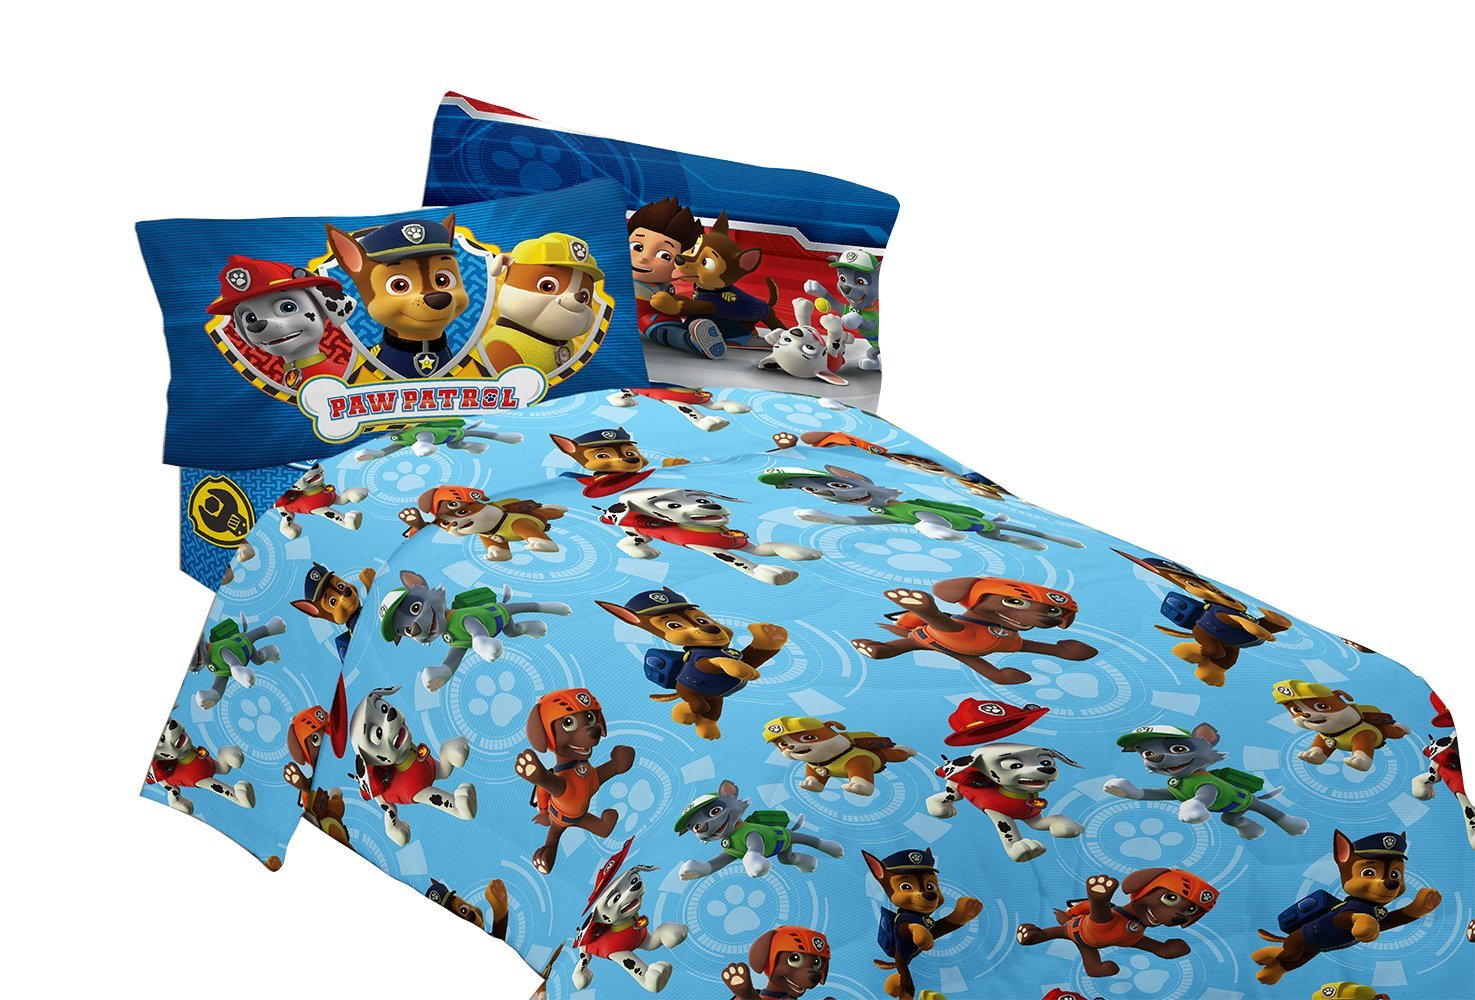 Nick Jr. Paw Patrol Adventure Bay Flannel Sheet Set, Twin